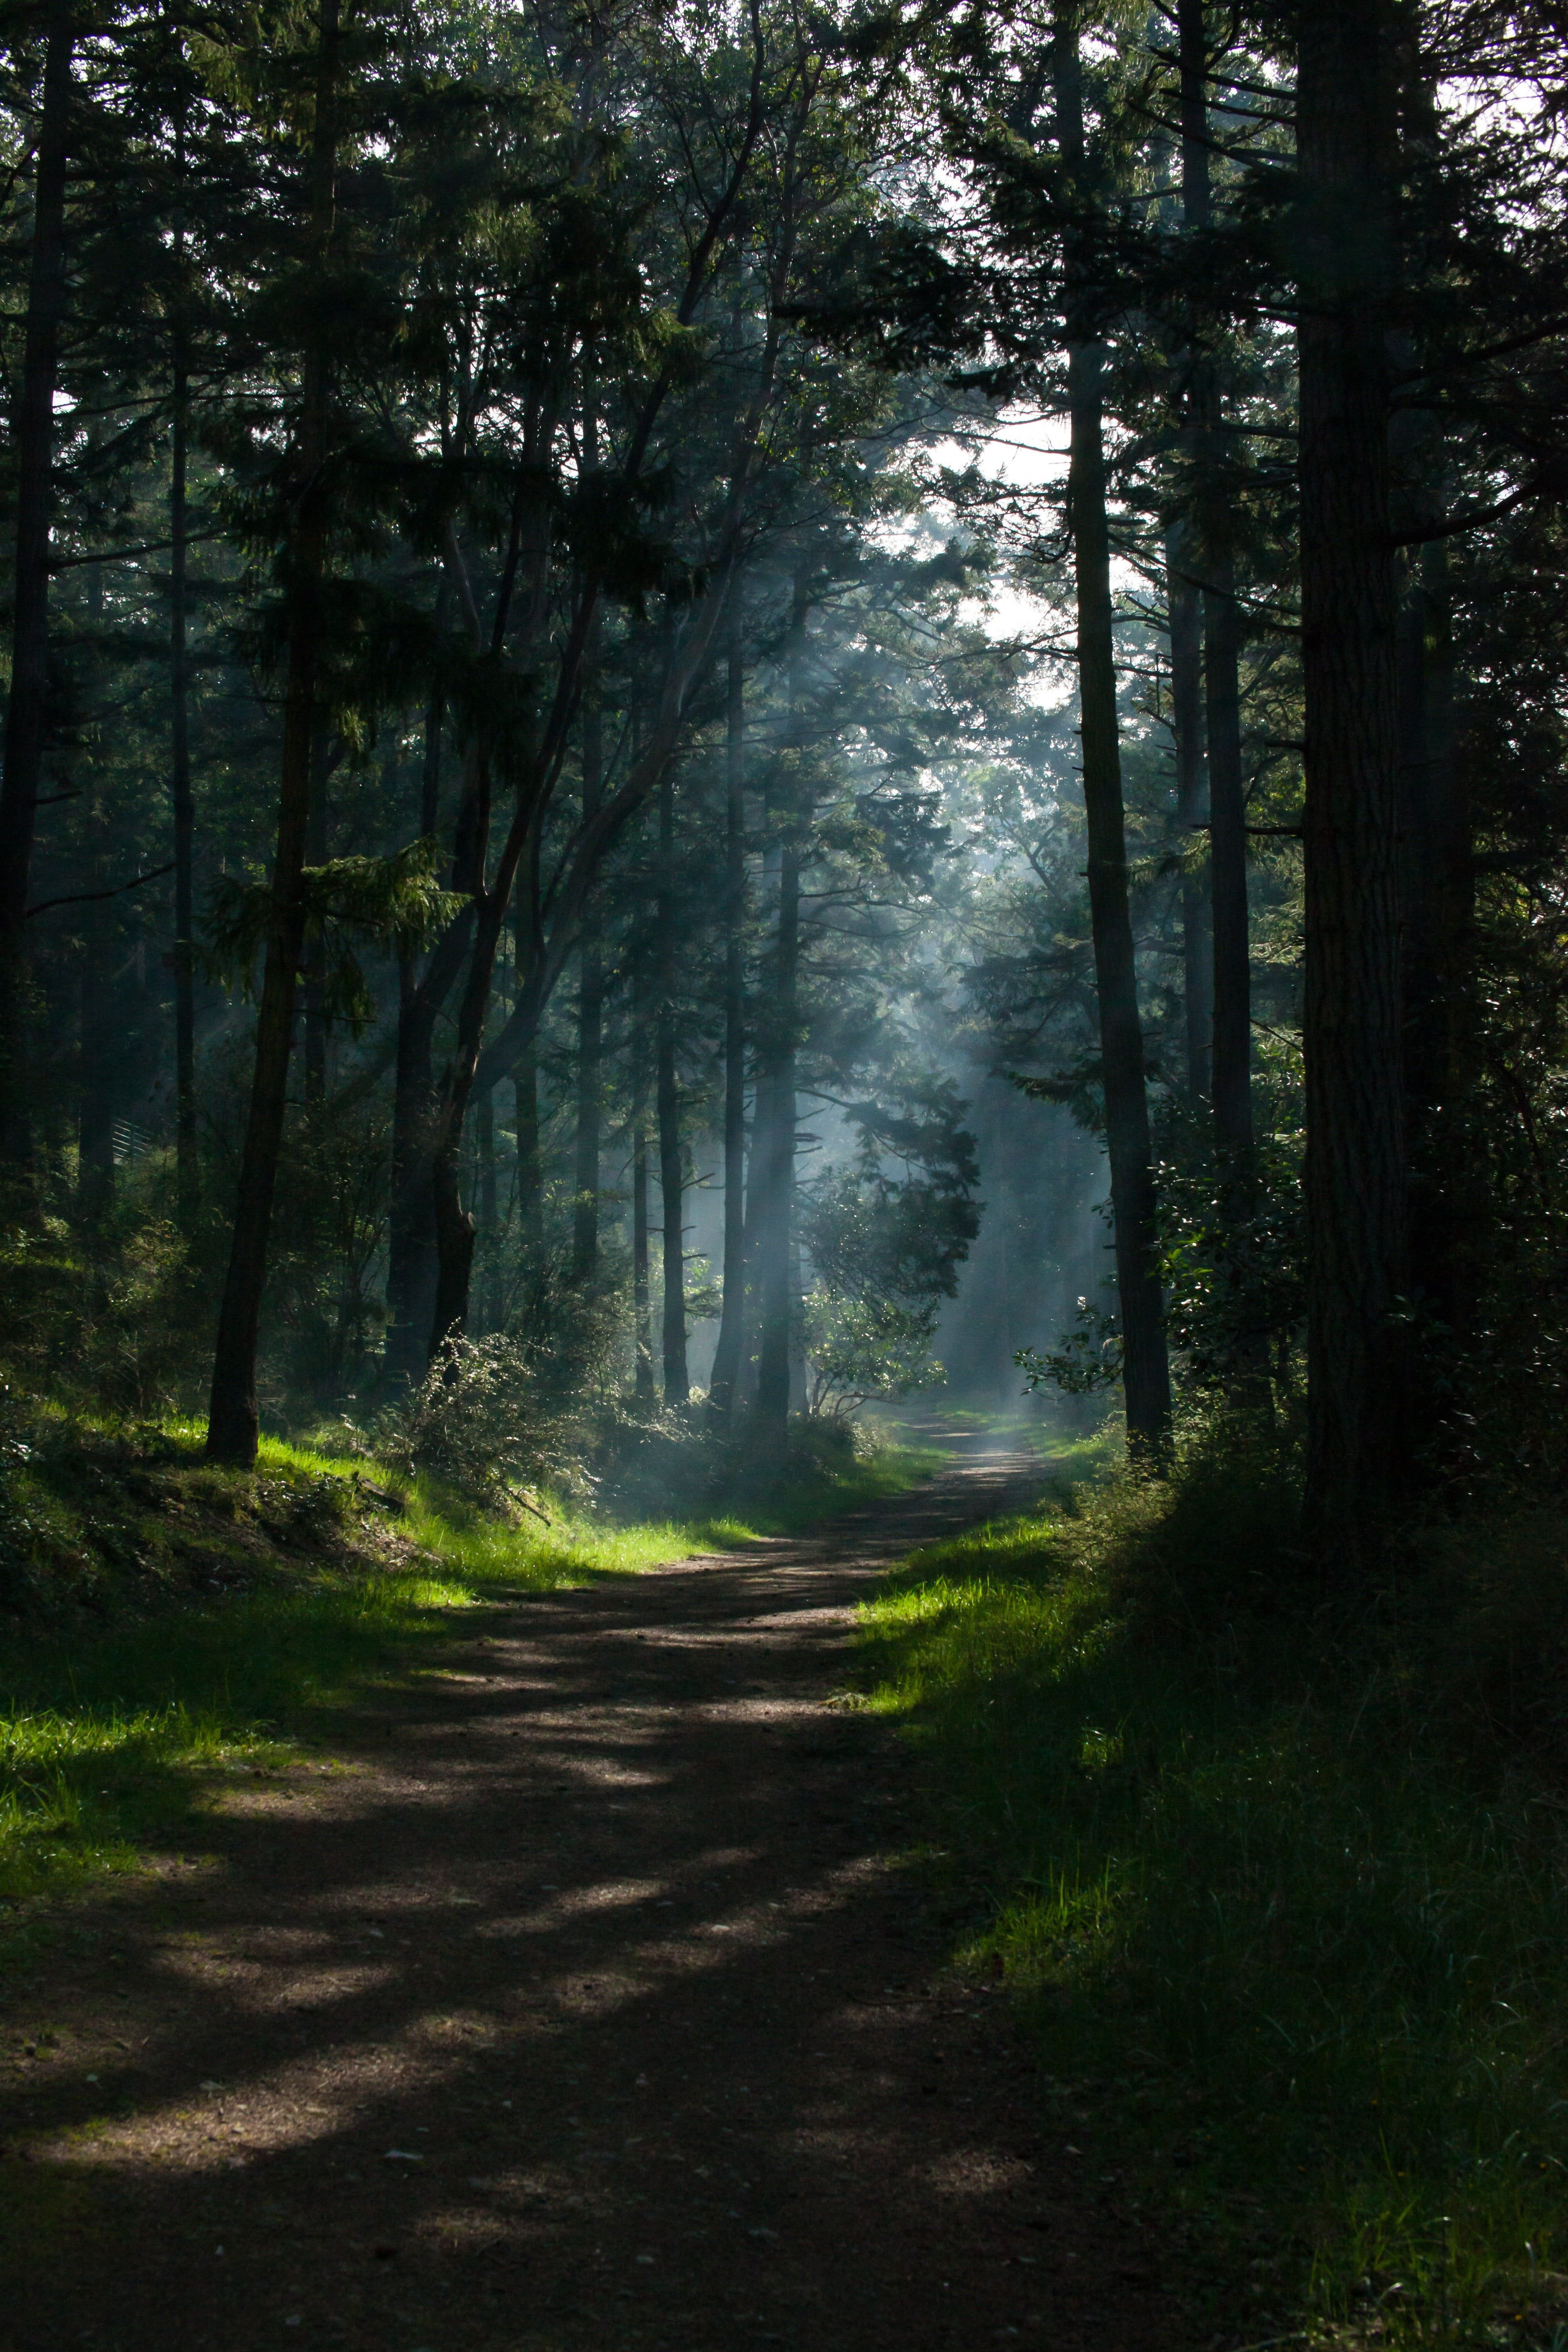 Nature Trees Portrait Display Path Forest Sunlight Dappled Sunlight Sun Rays Shadow 5k Wallpaper Hdwa Scenery Nature Photography Landscape Photography